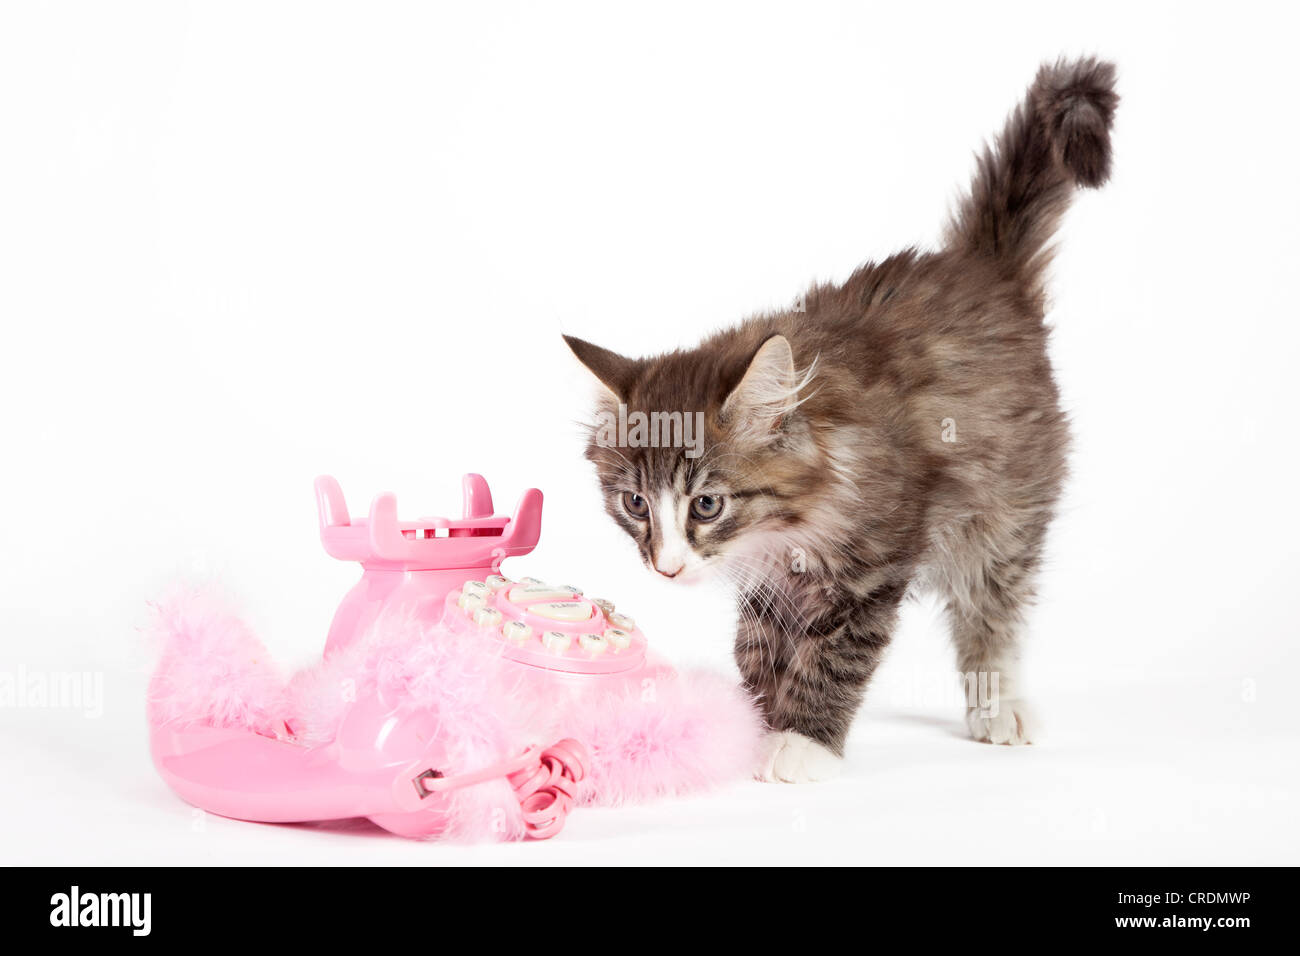 Young Norwegian Forest Cat beside a pink telephone with pompoms - Stock Image